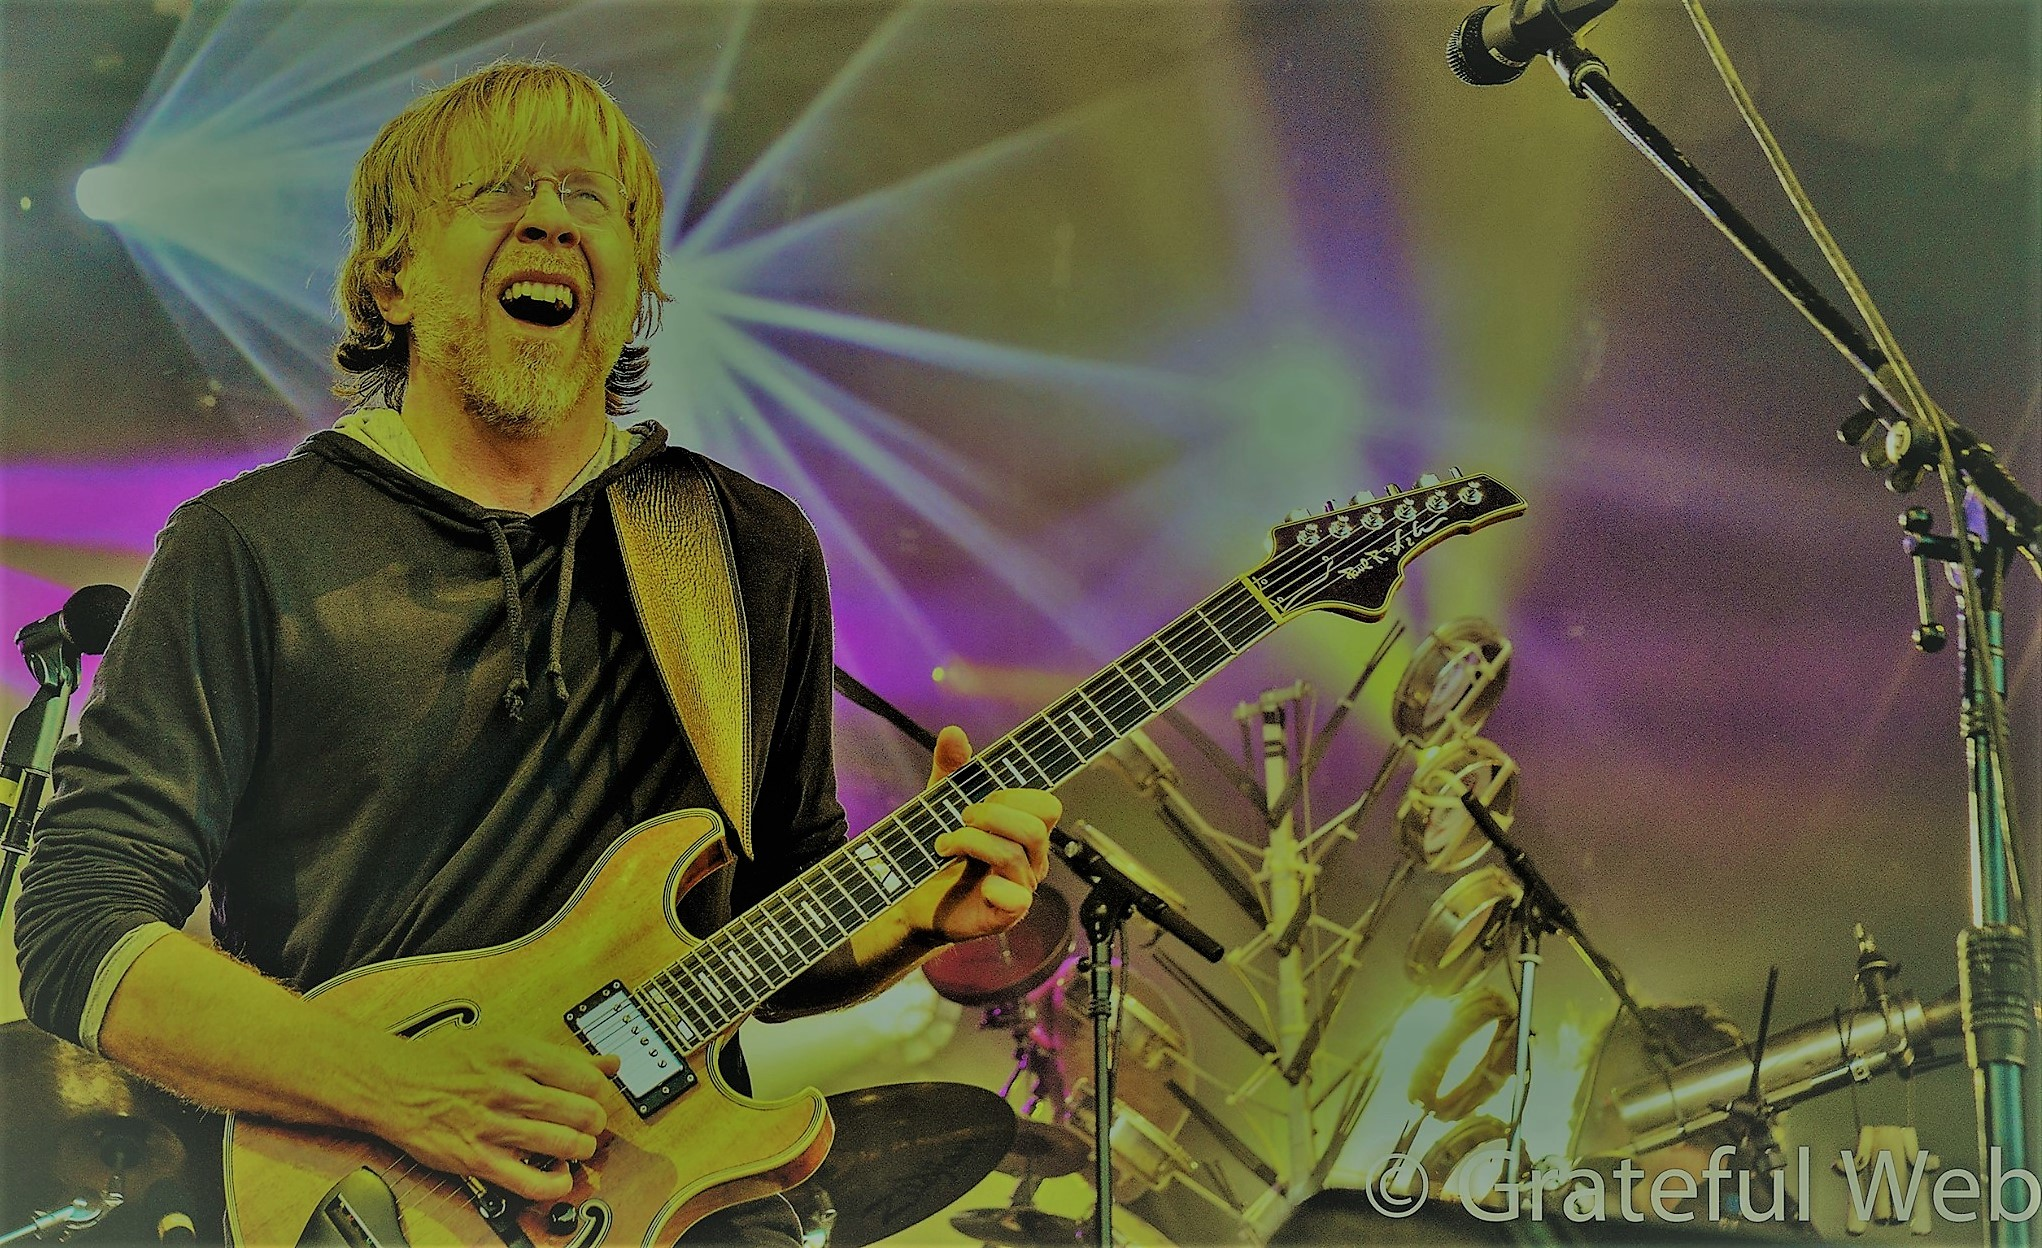 Trey and TTB will headline Saturday night